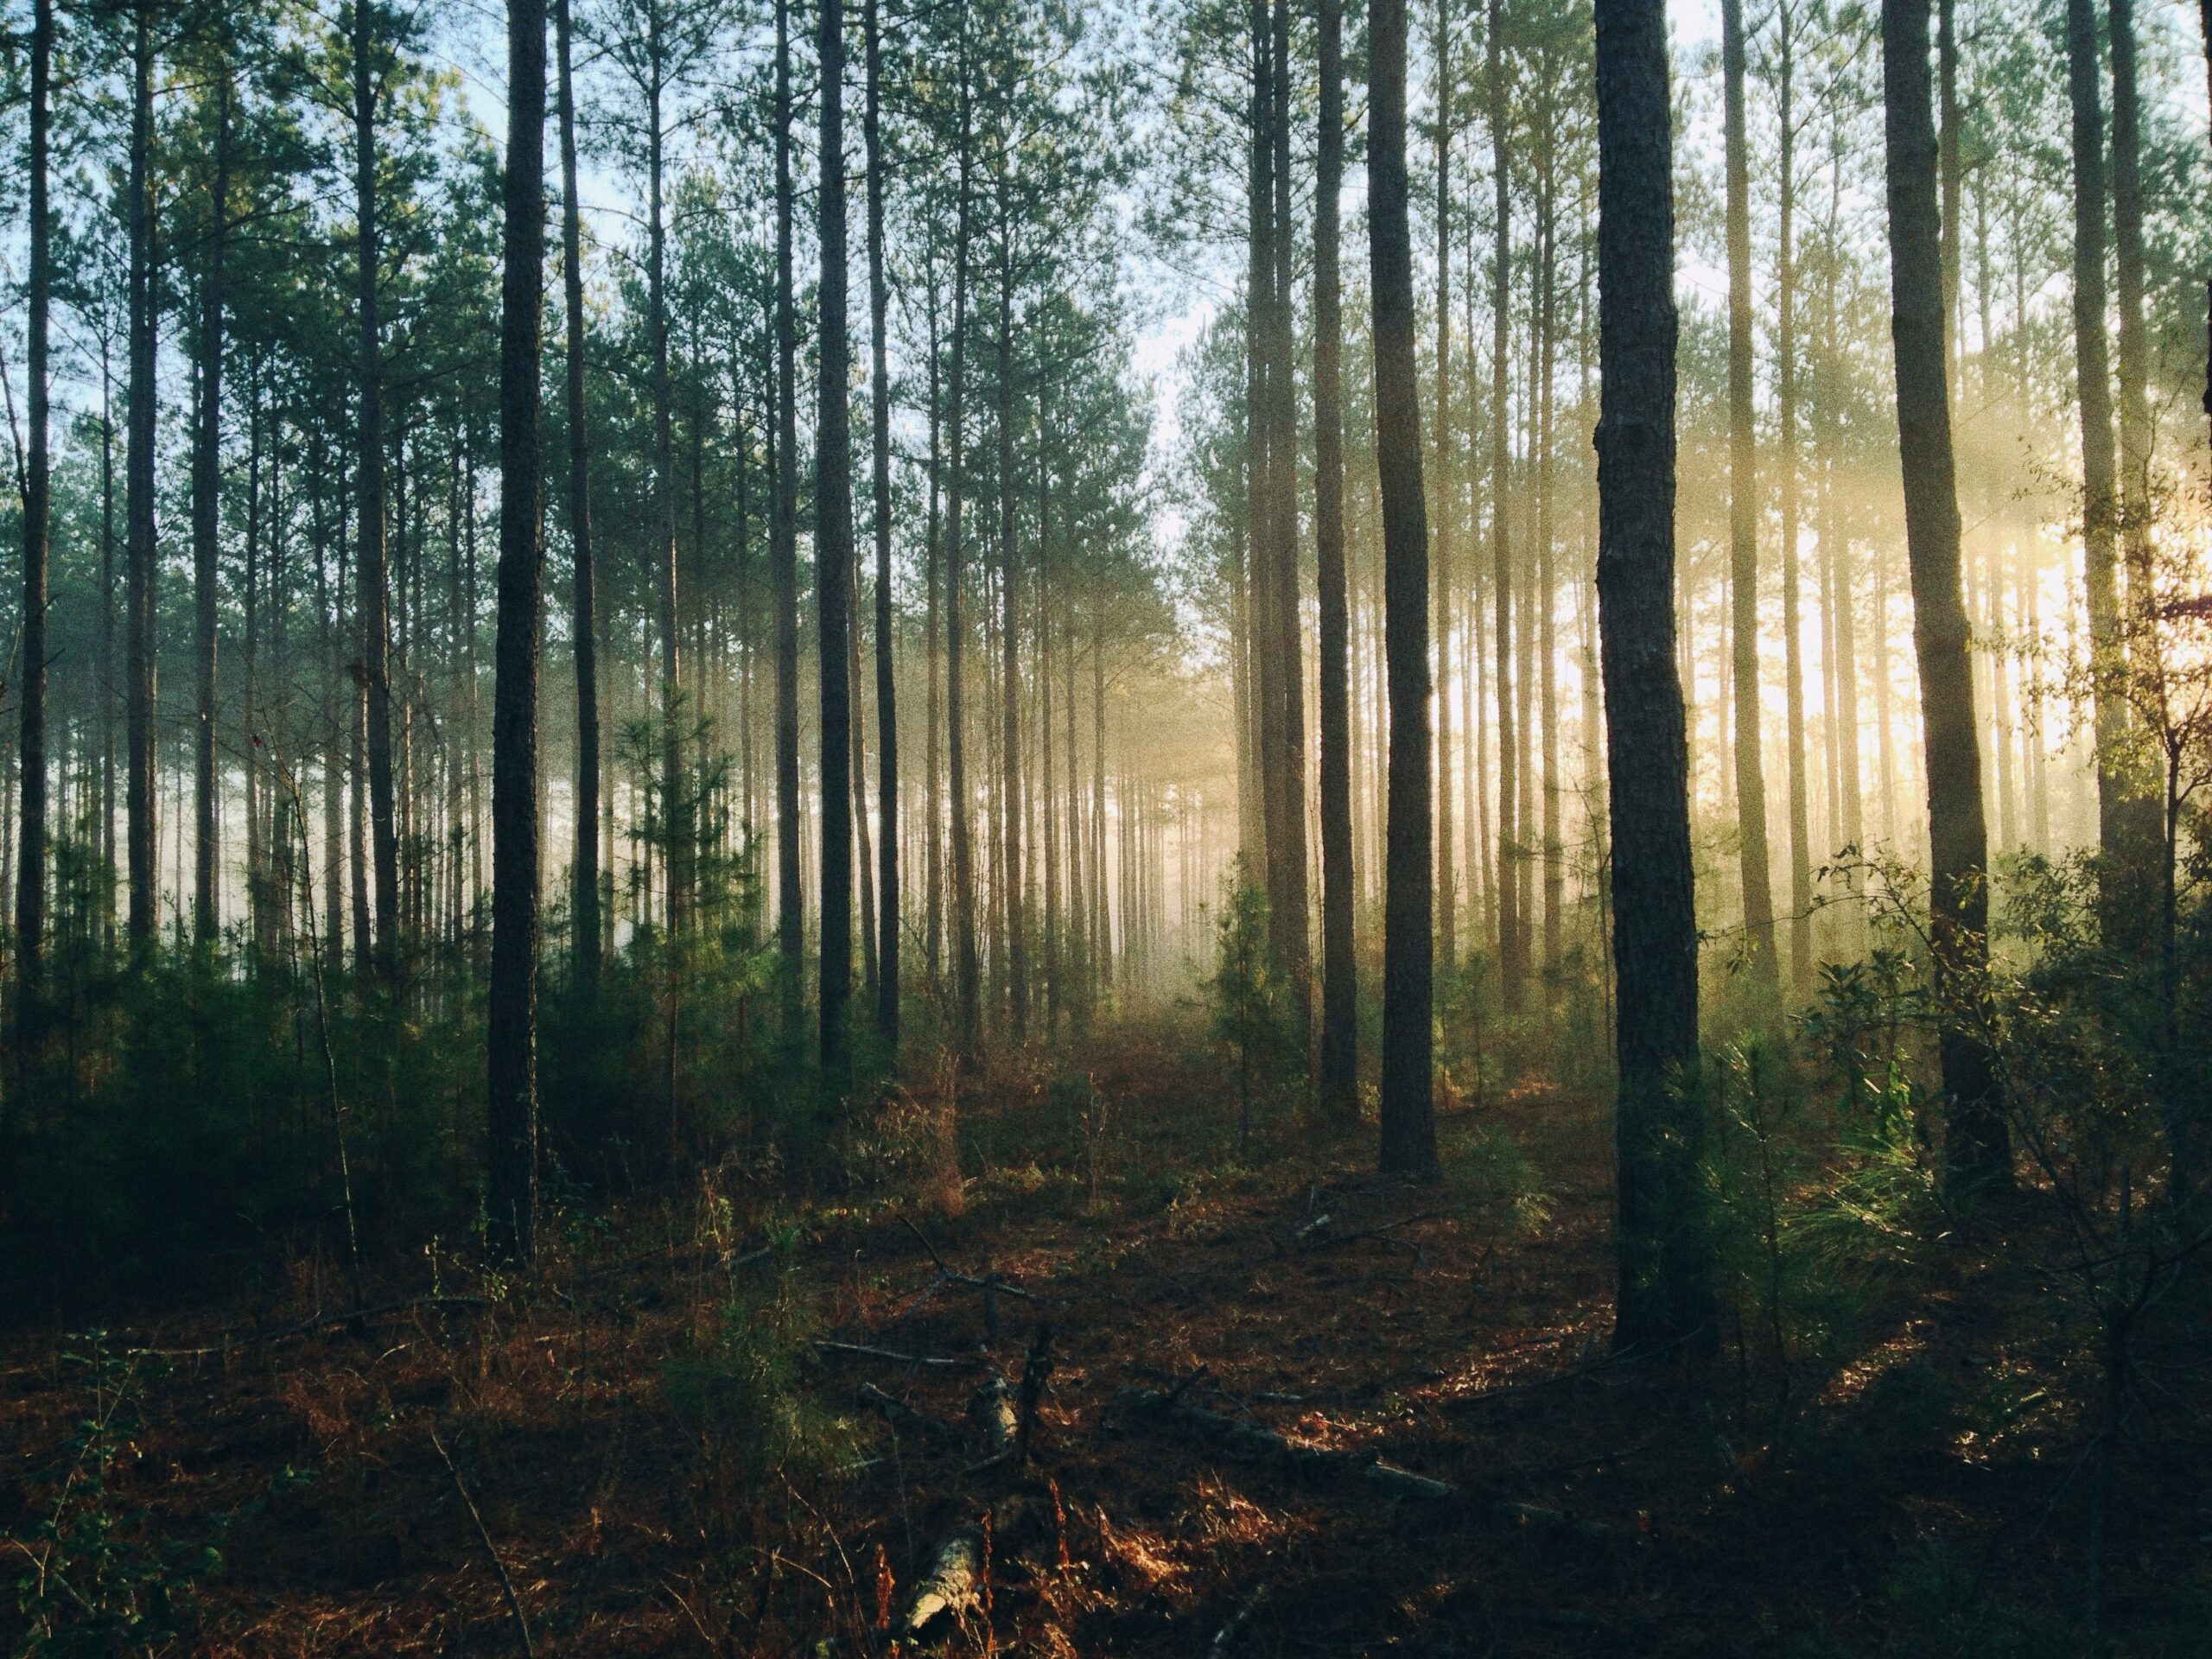 Impact of Climate Change on Forests – Experts across CEE Discuss the Challenges Faced by the Forestry Sector